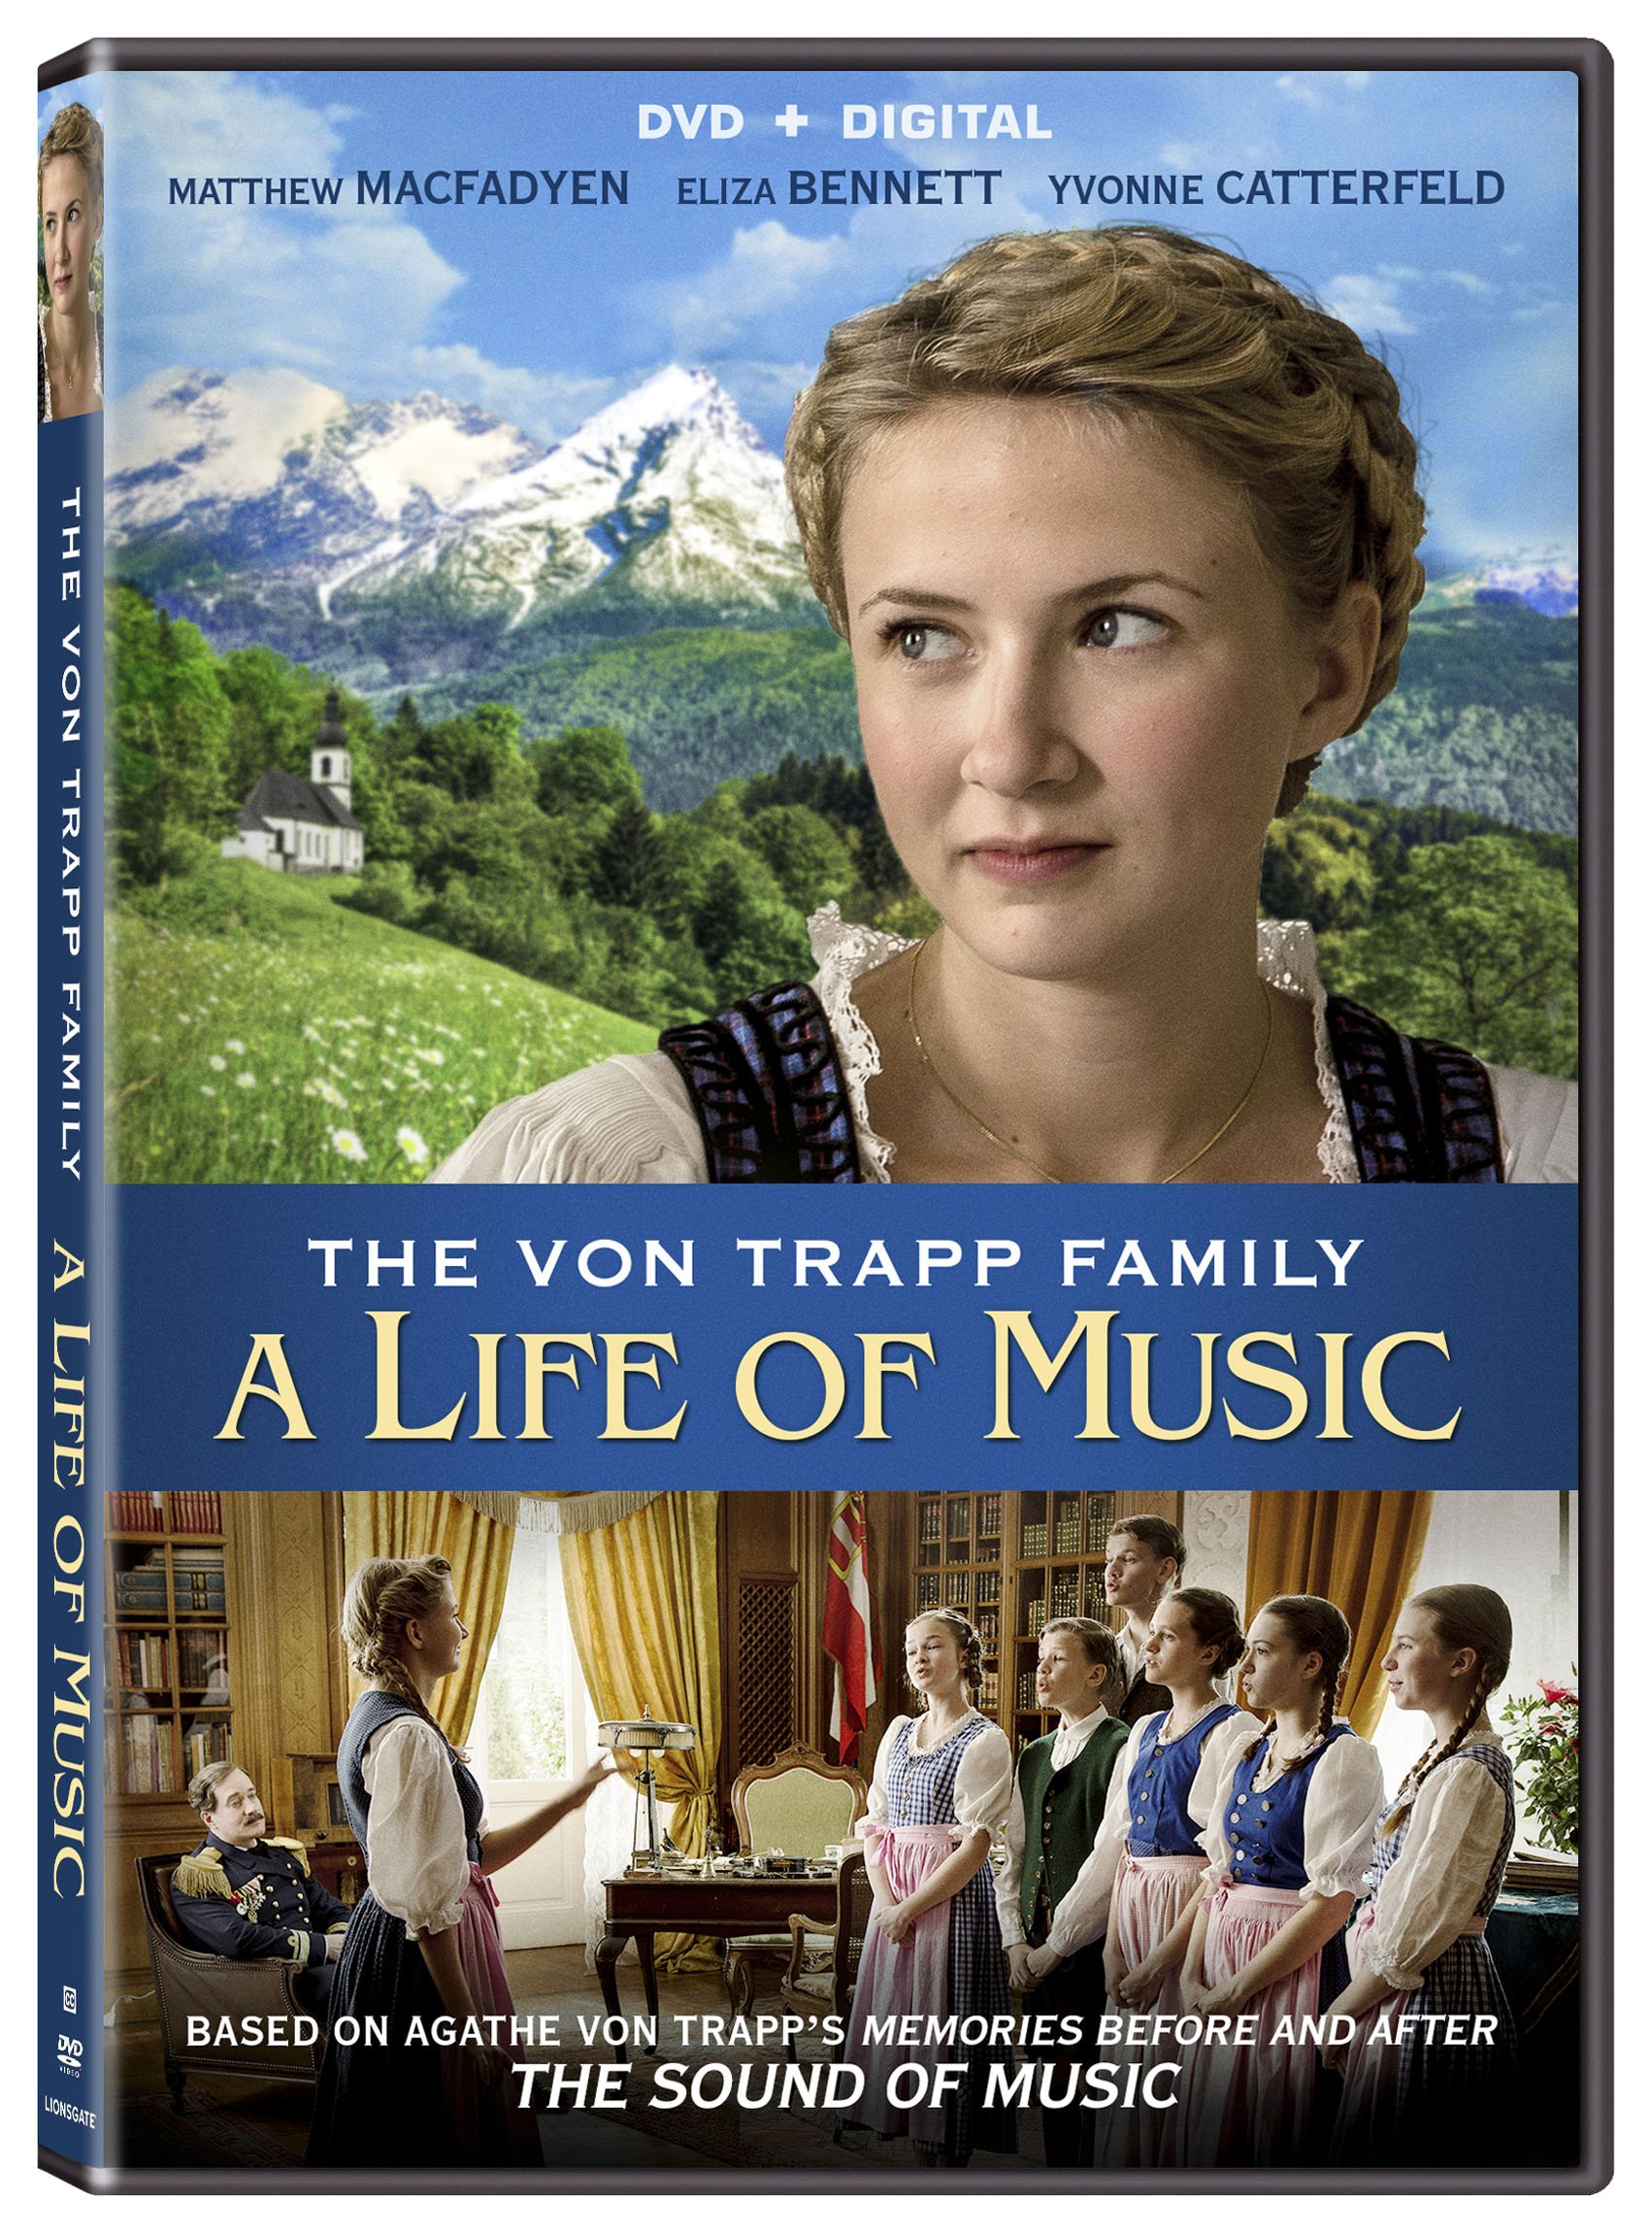 DVD : The Von Trapp Family: A Life of Music (AC-3, Dolby, Widescreen, )